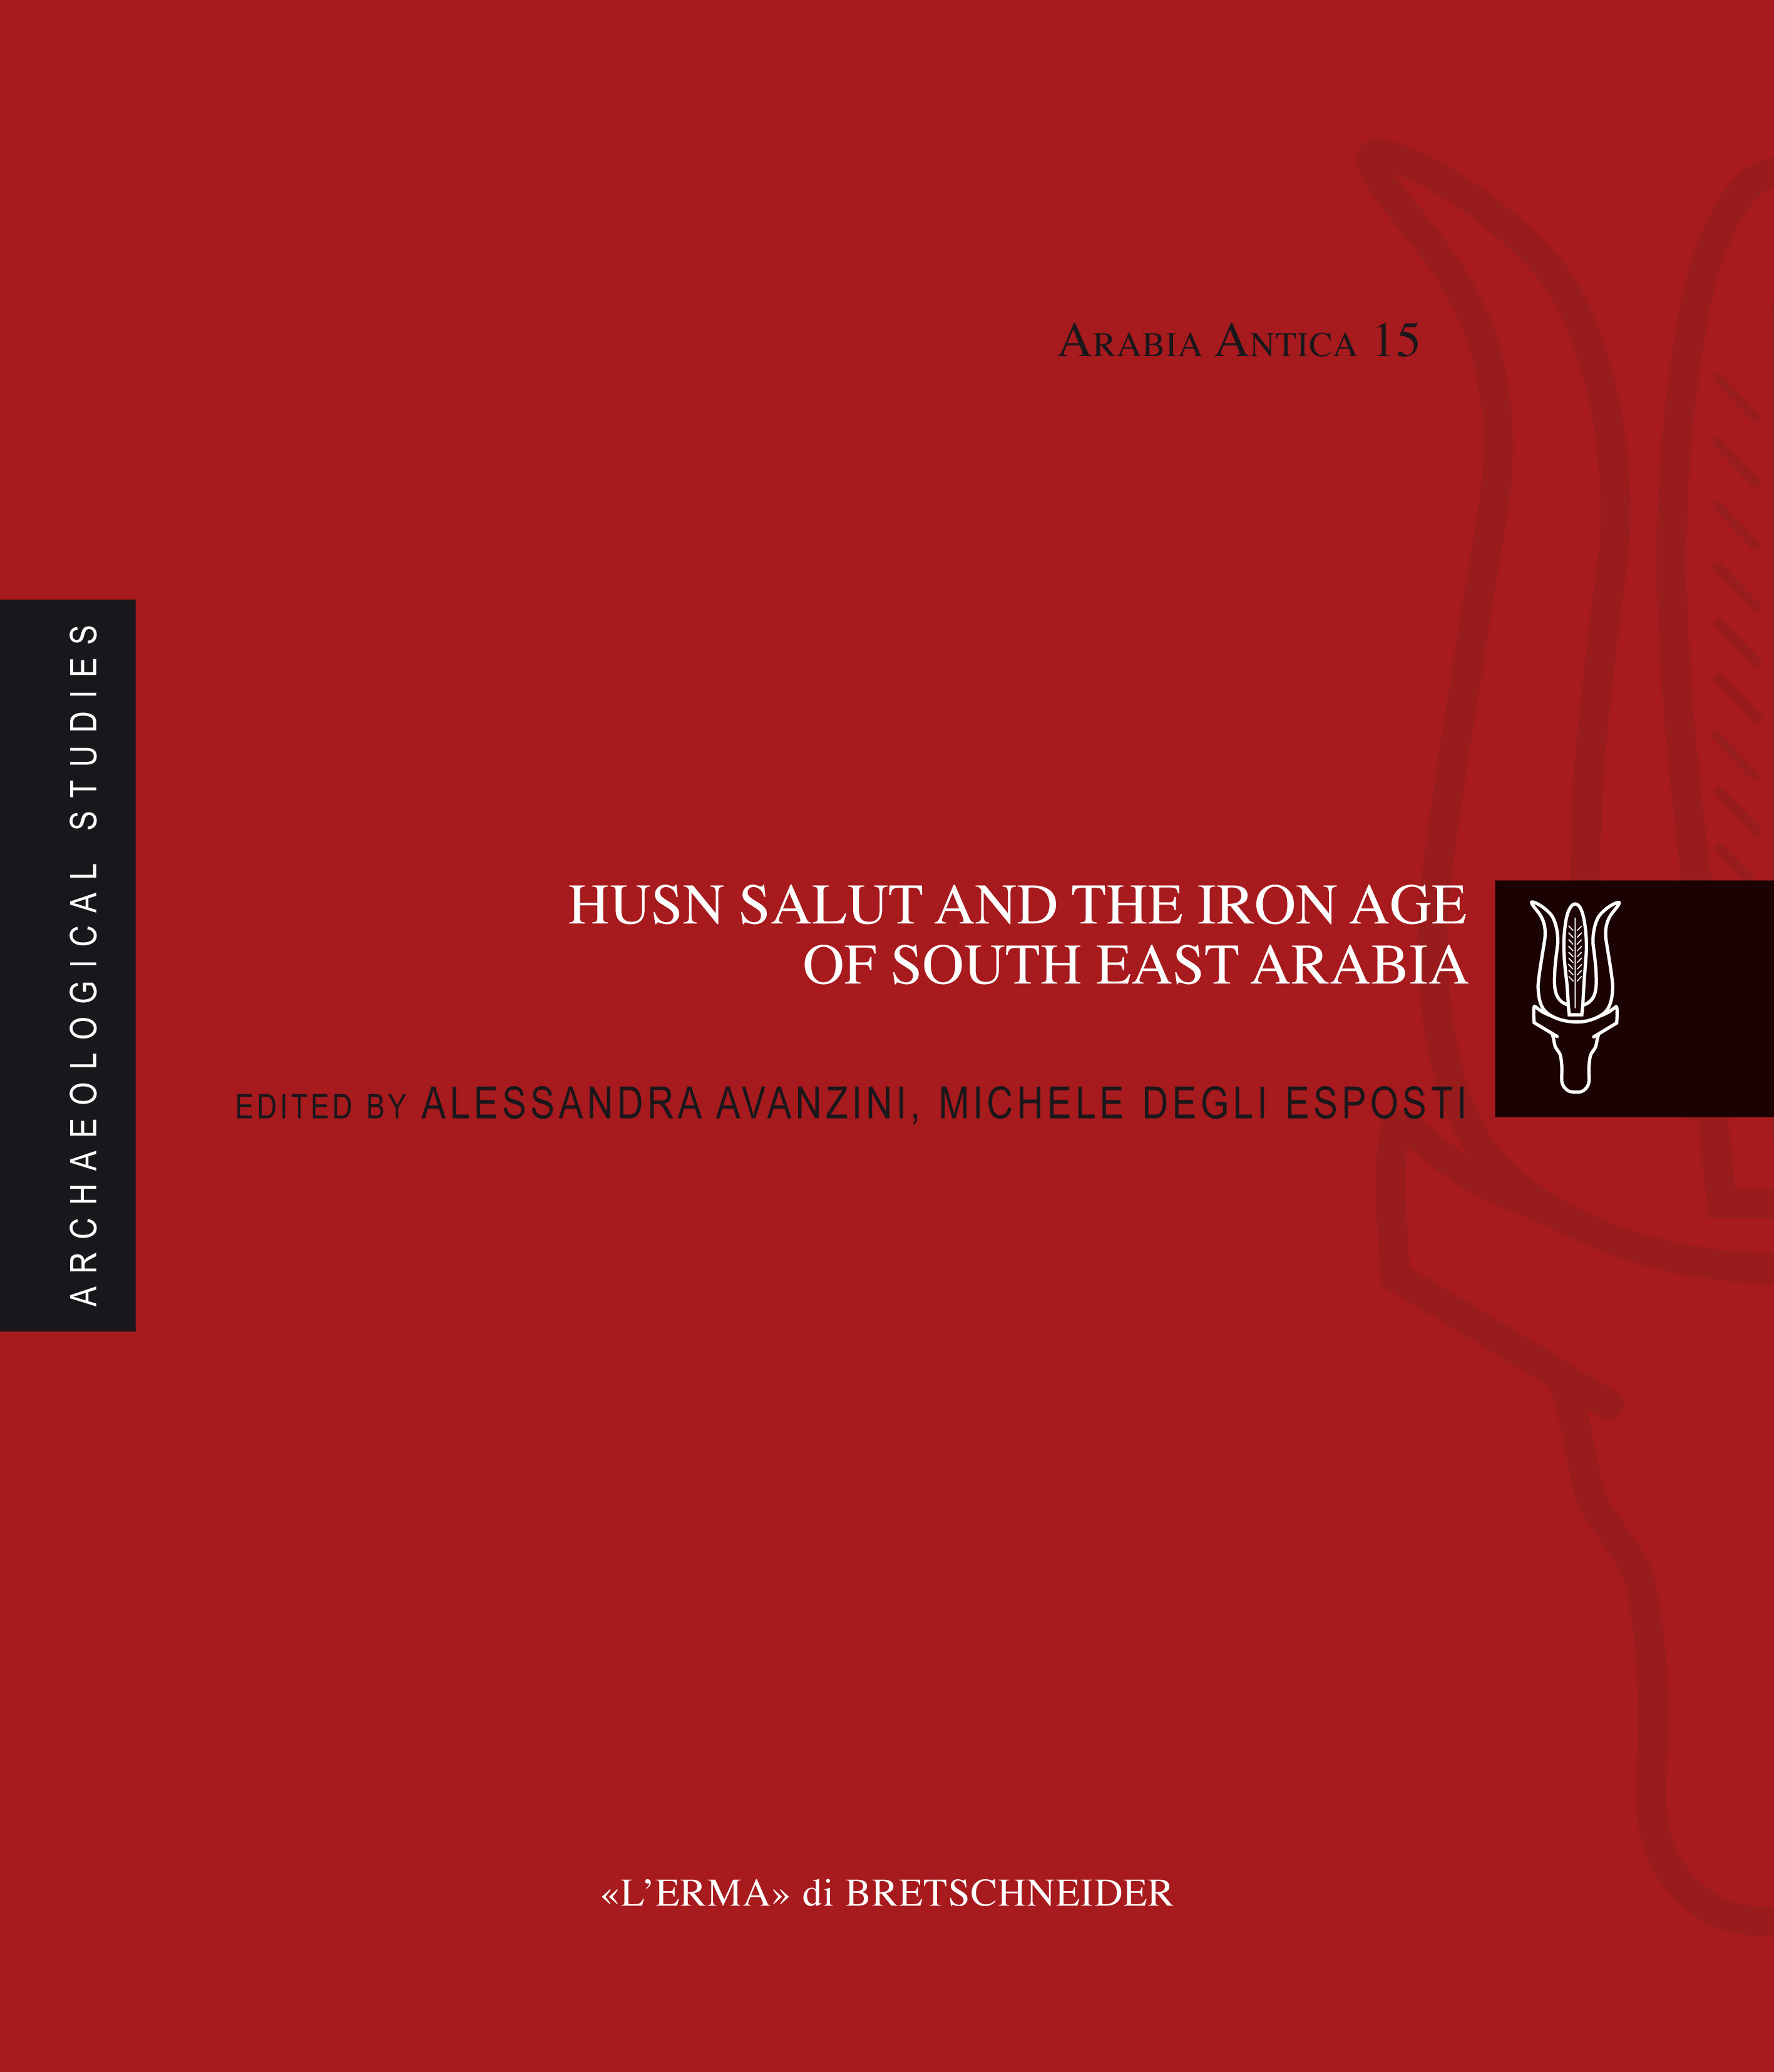 Husn Salut and the Iron Age of South East Arabia.